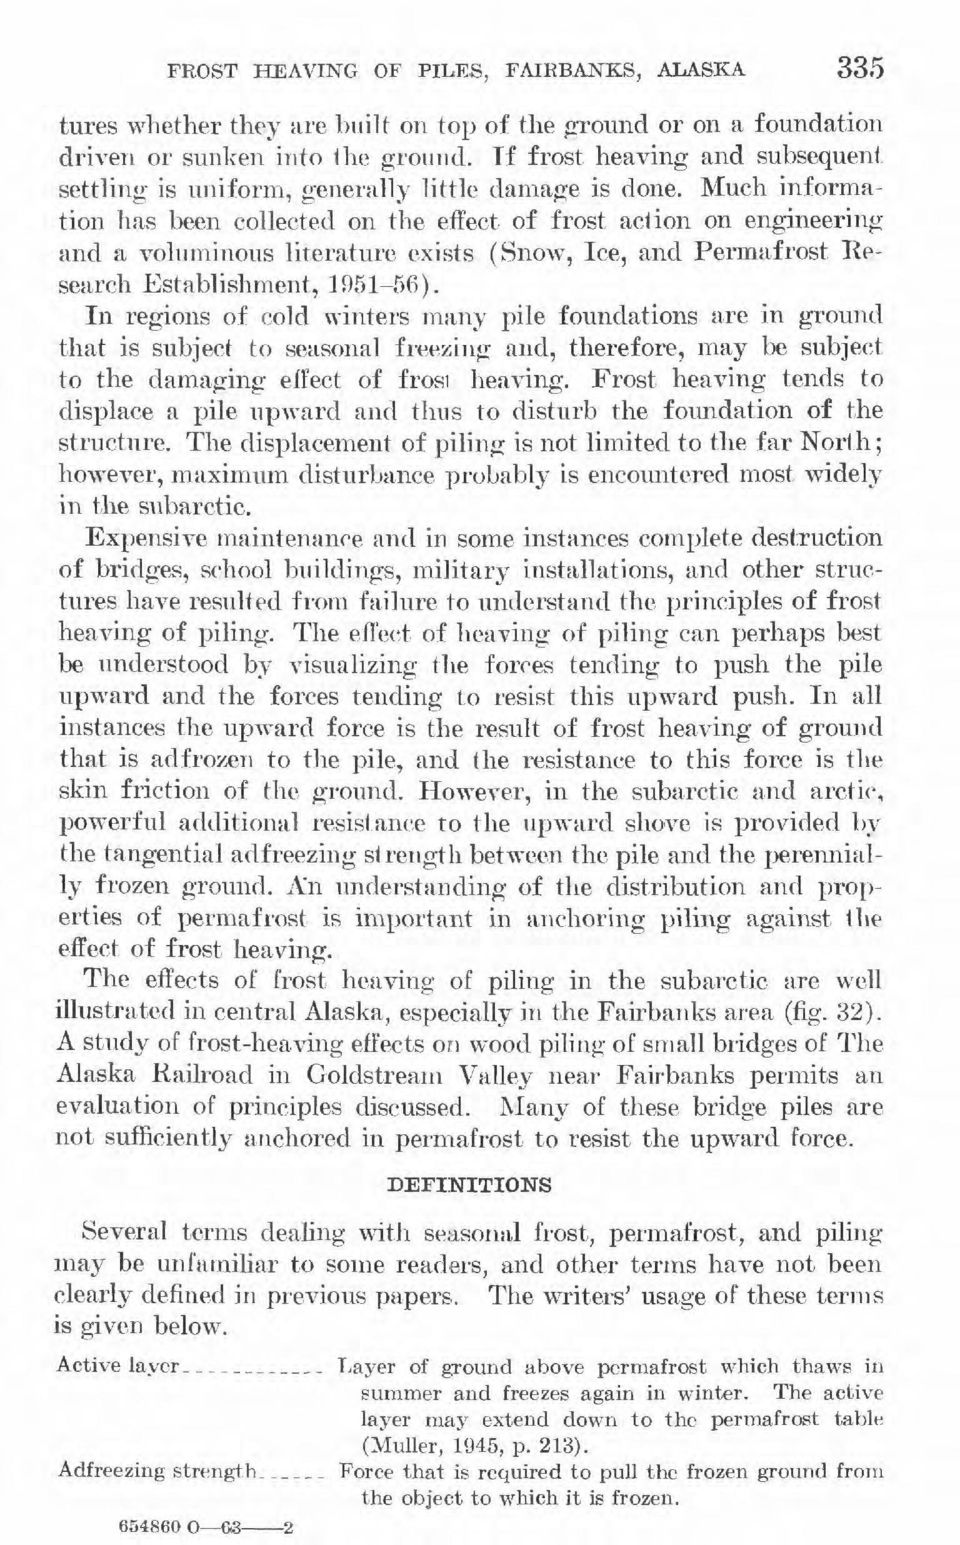 Much information has been collected on the effect of frost action on engineering and a voluminous literature exists (Snow, Ice, and Permafrost Research Establishment, 1951-56).